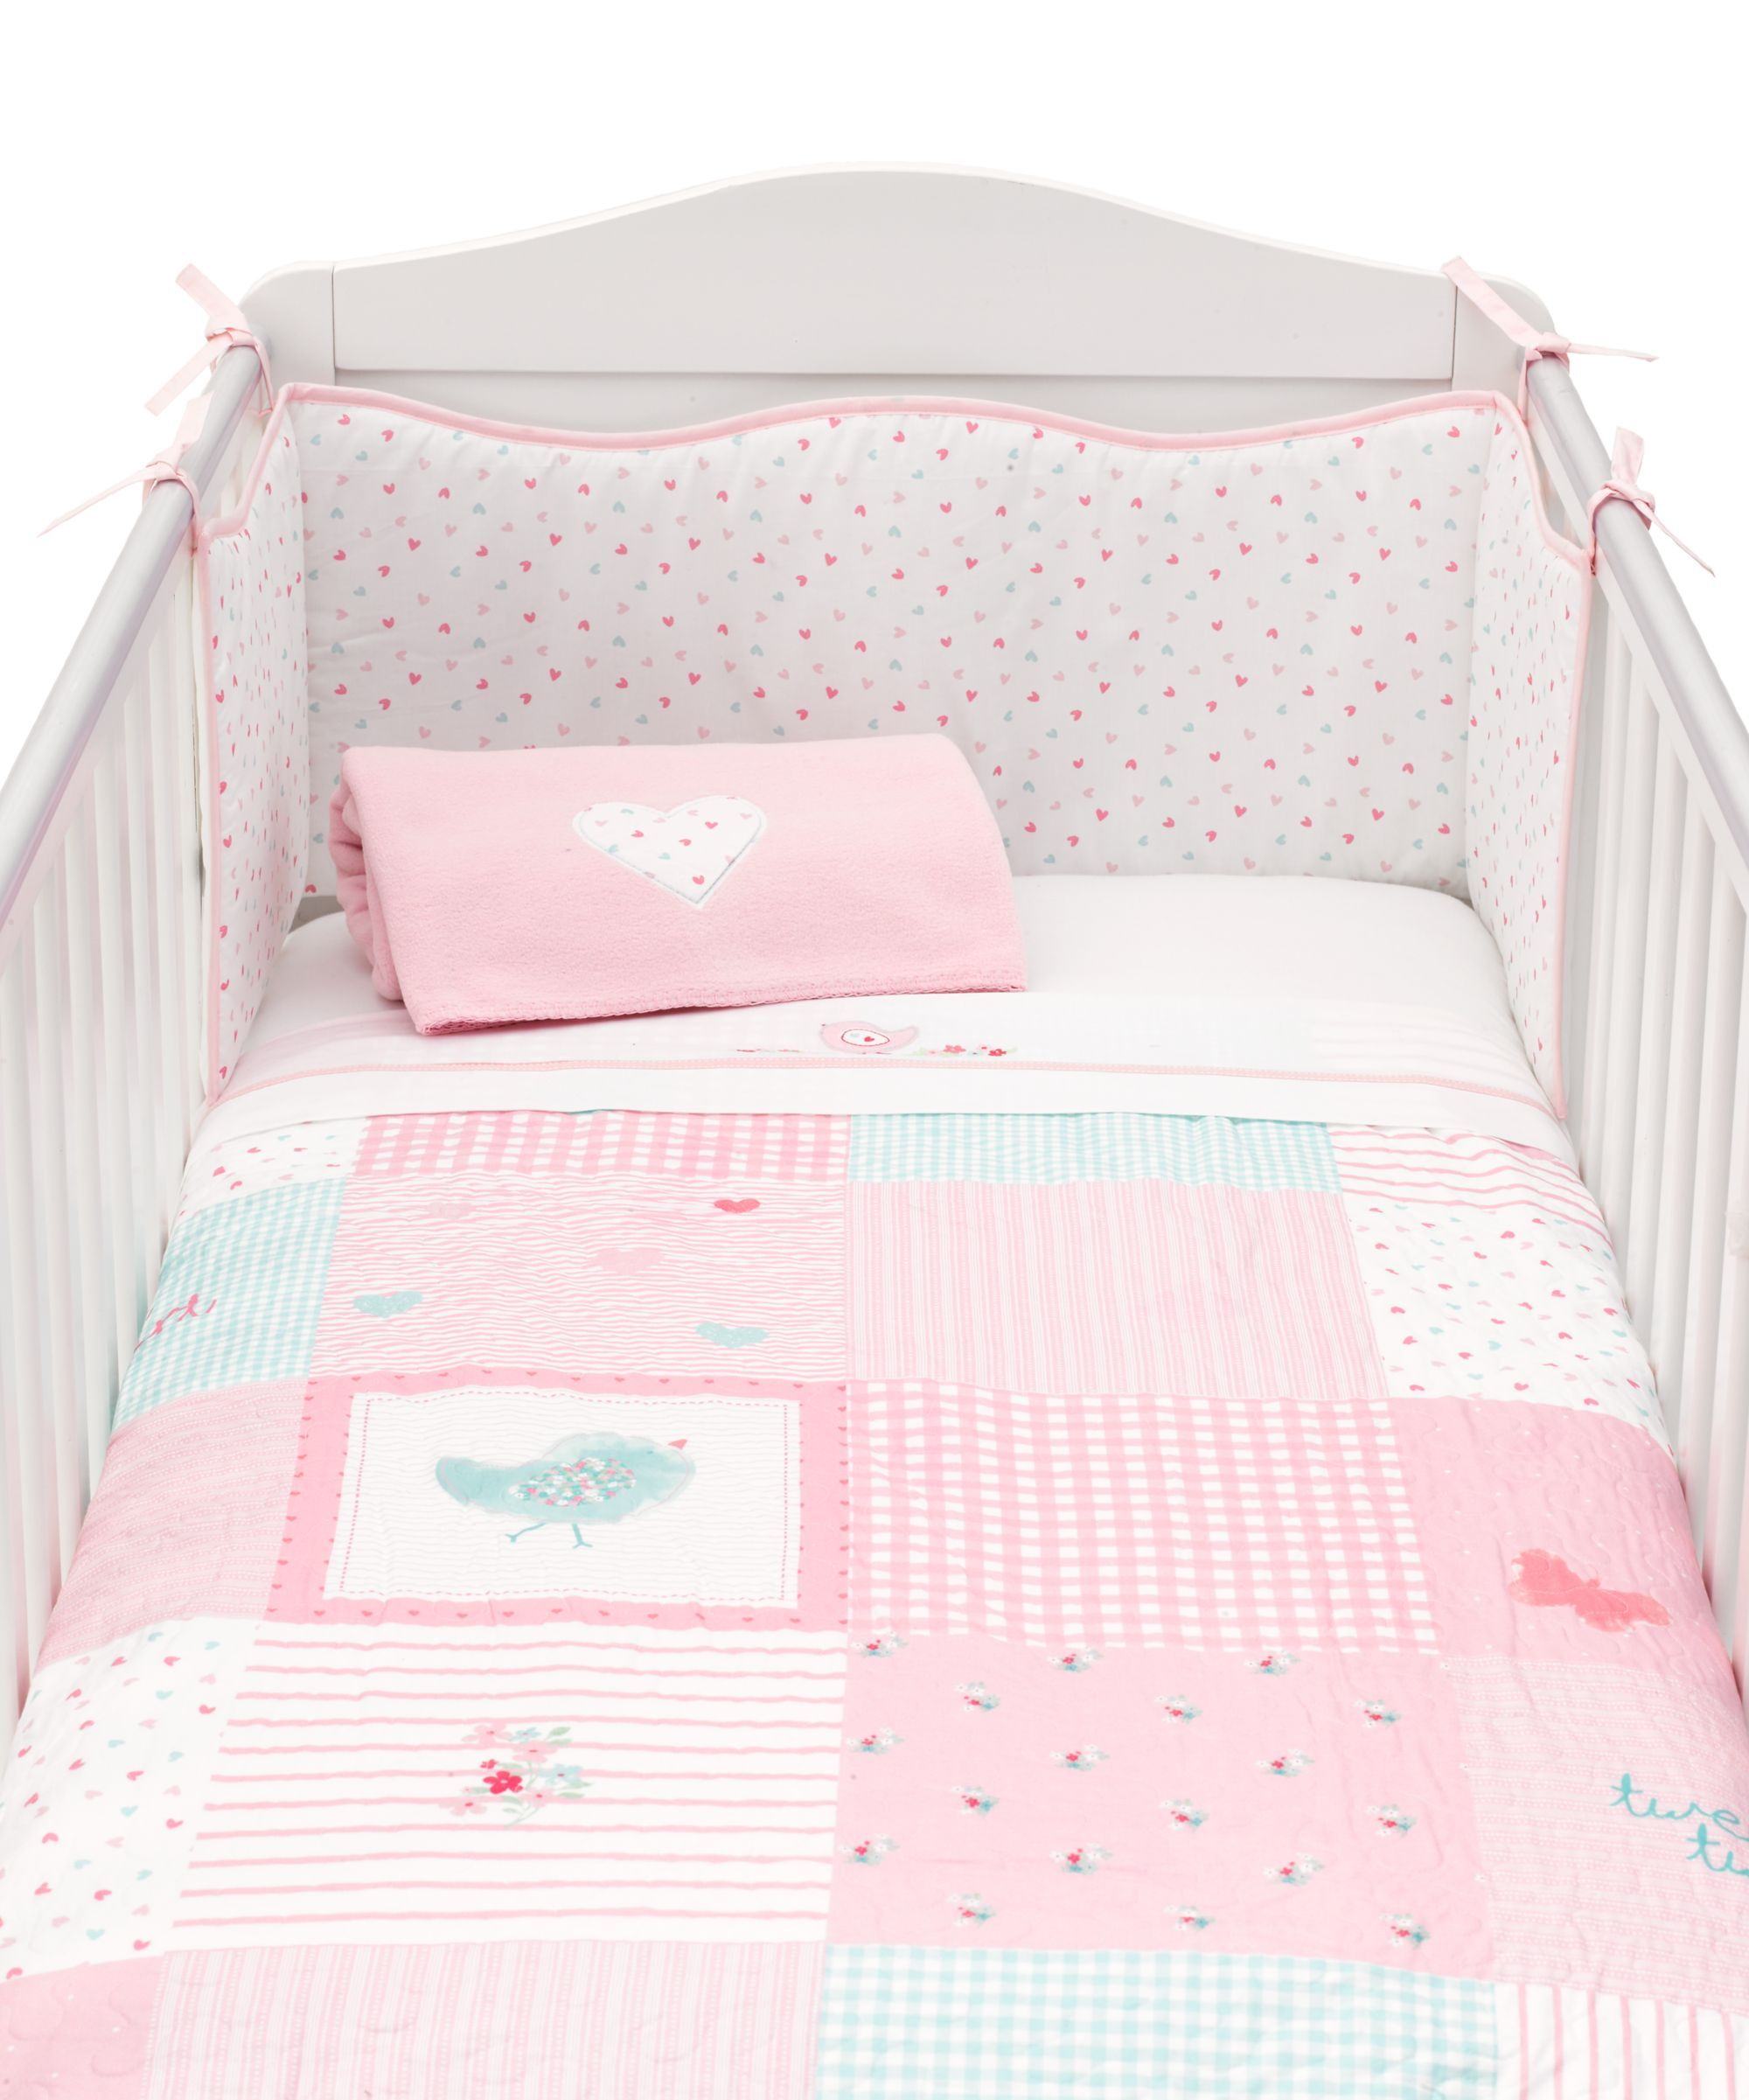 bag rooms away kids fold beds pin bed a sleepovers in sleepover